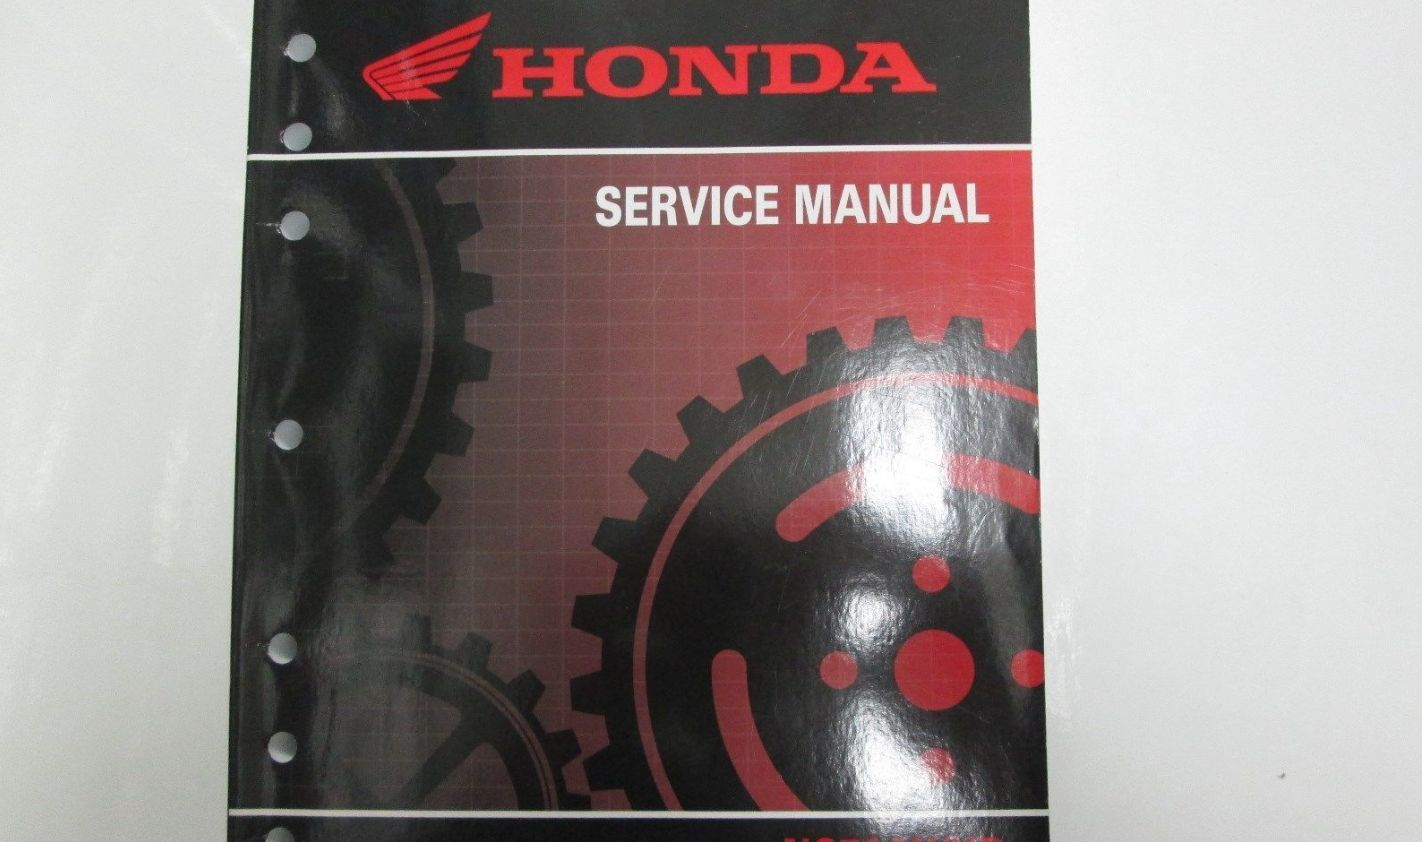 honda crf 110 service manual